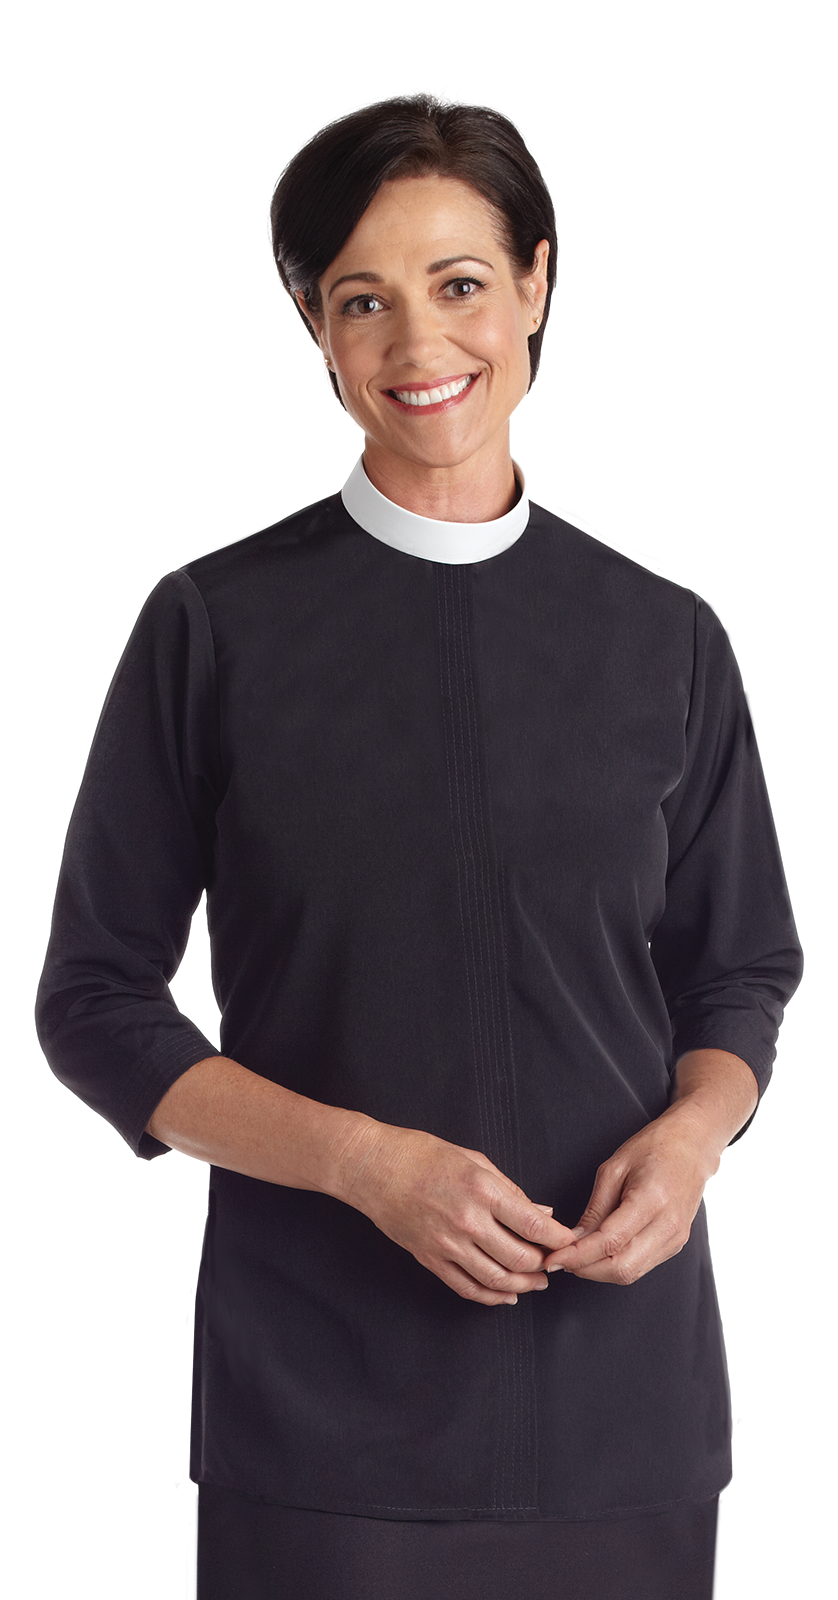 CS650 Woman's Short Sleeve Neckband Tunic Clergy Blouse